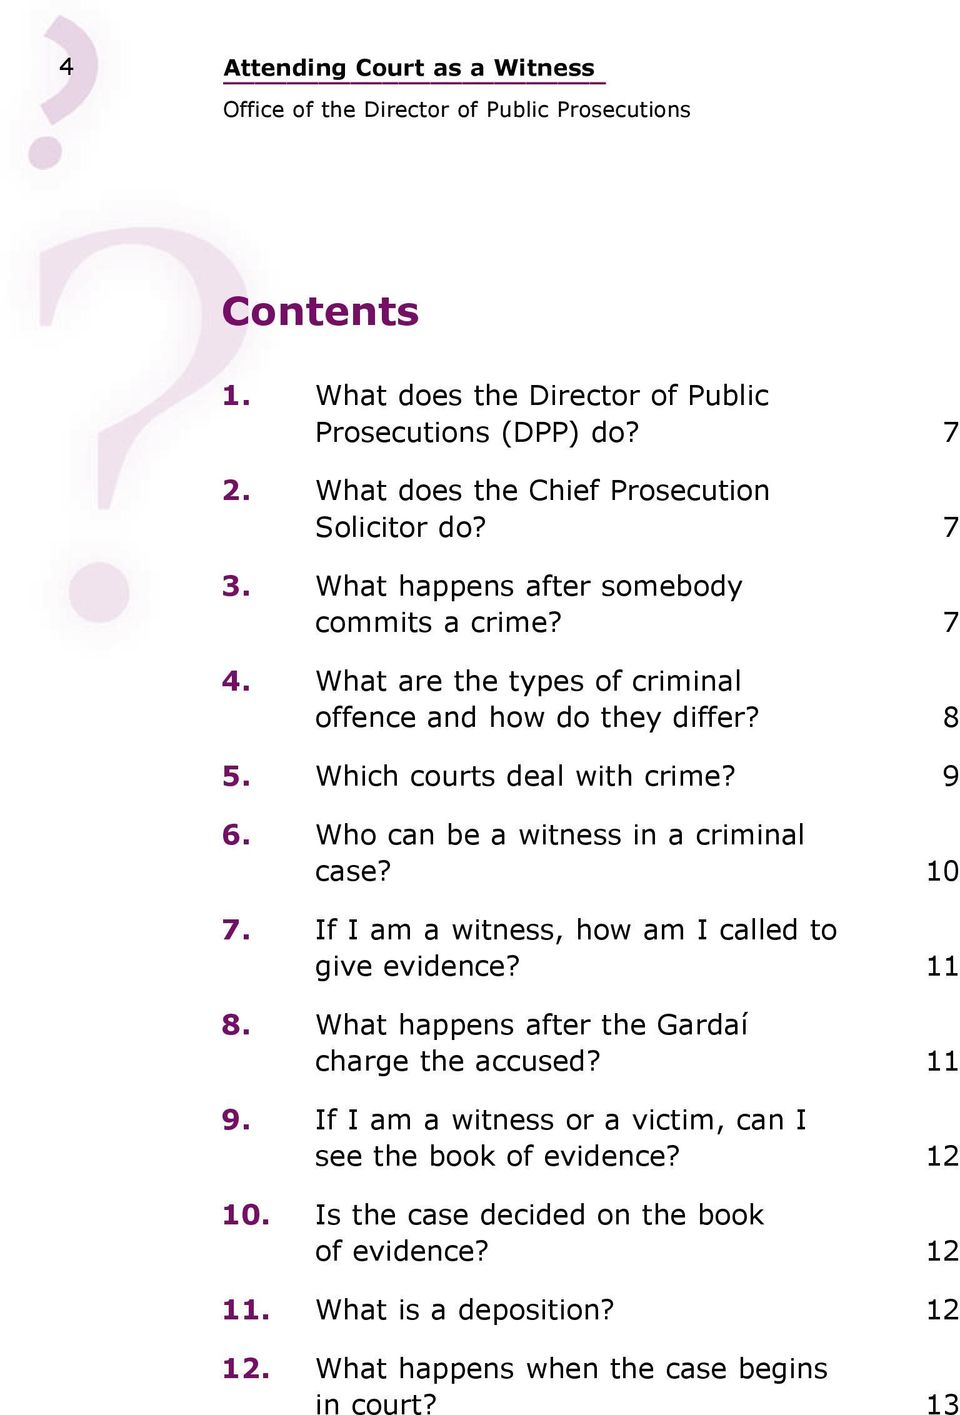 Who can be a witness in a criminal case?1 7. If I am a witness, how am I called to give evidence?1 8. What happens after the Gardaí charge the accused?1 9.